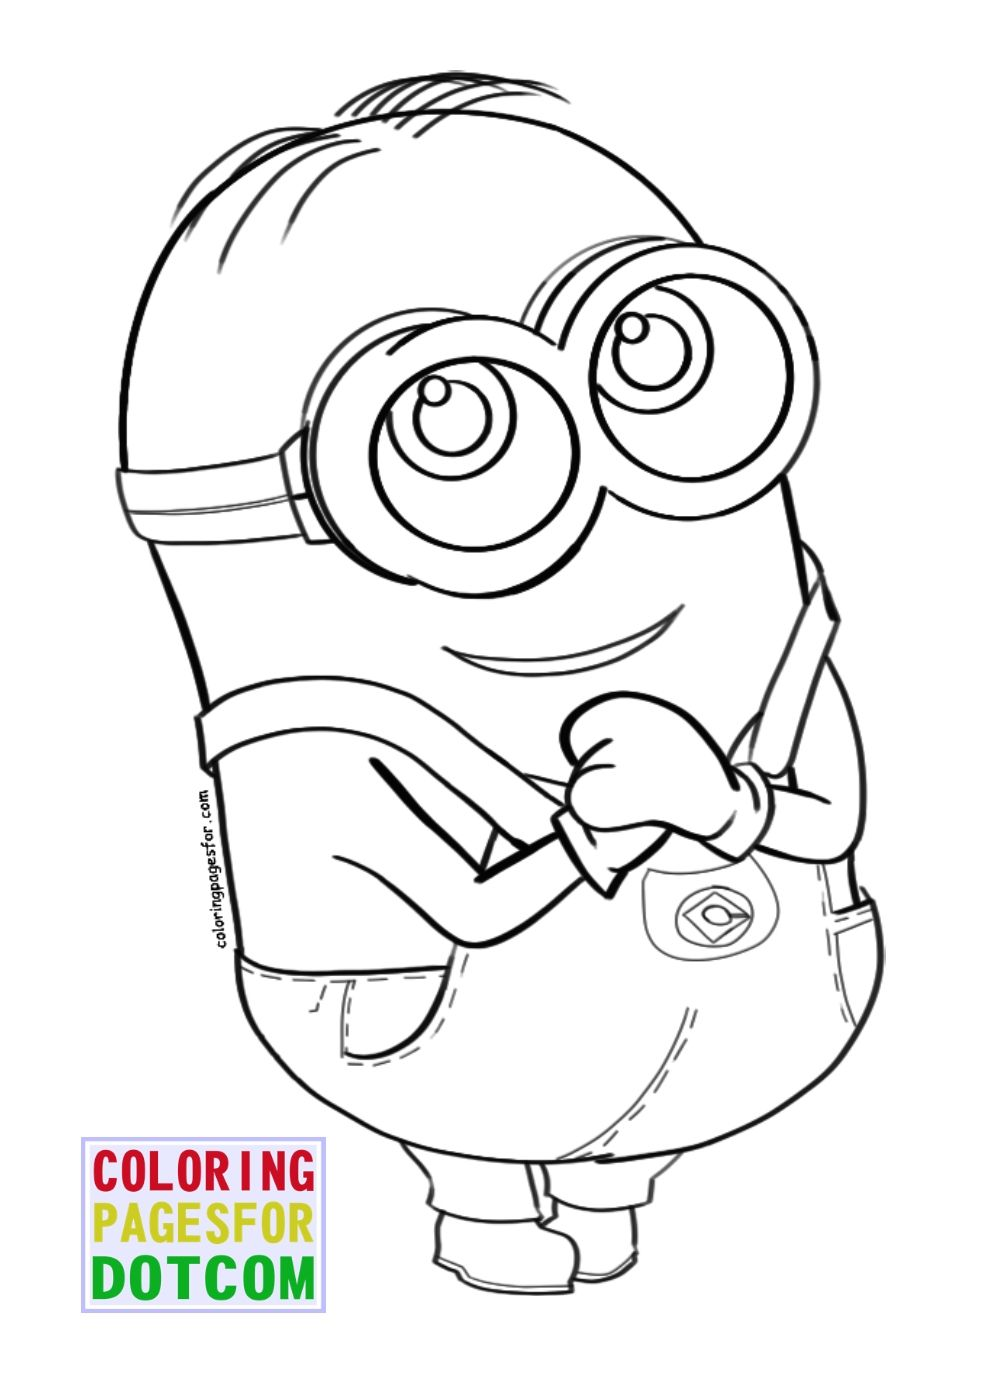 Free Minion Coloring Pages Minions Coloring Pages 3  Coloring Pages Printable  Kids